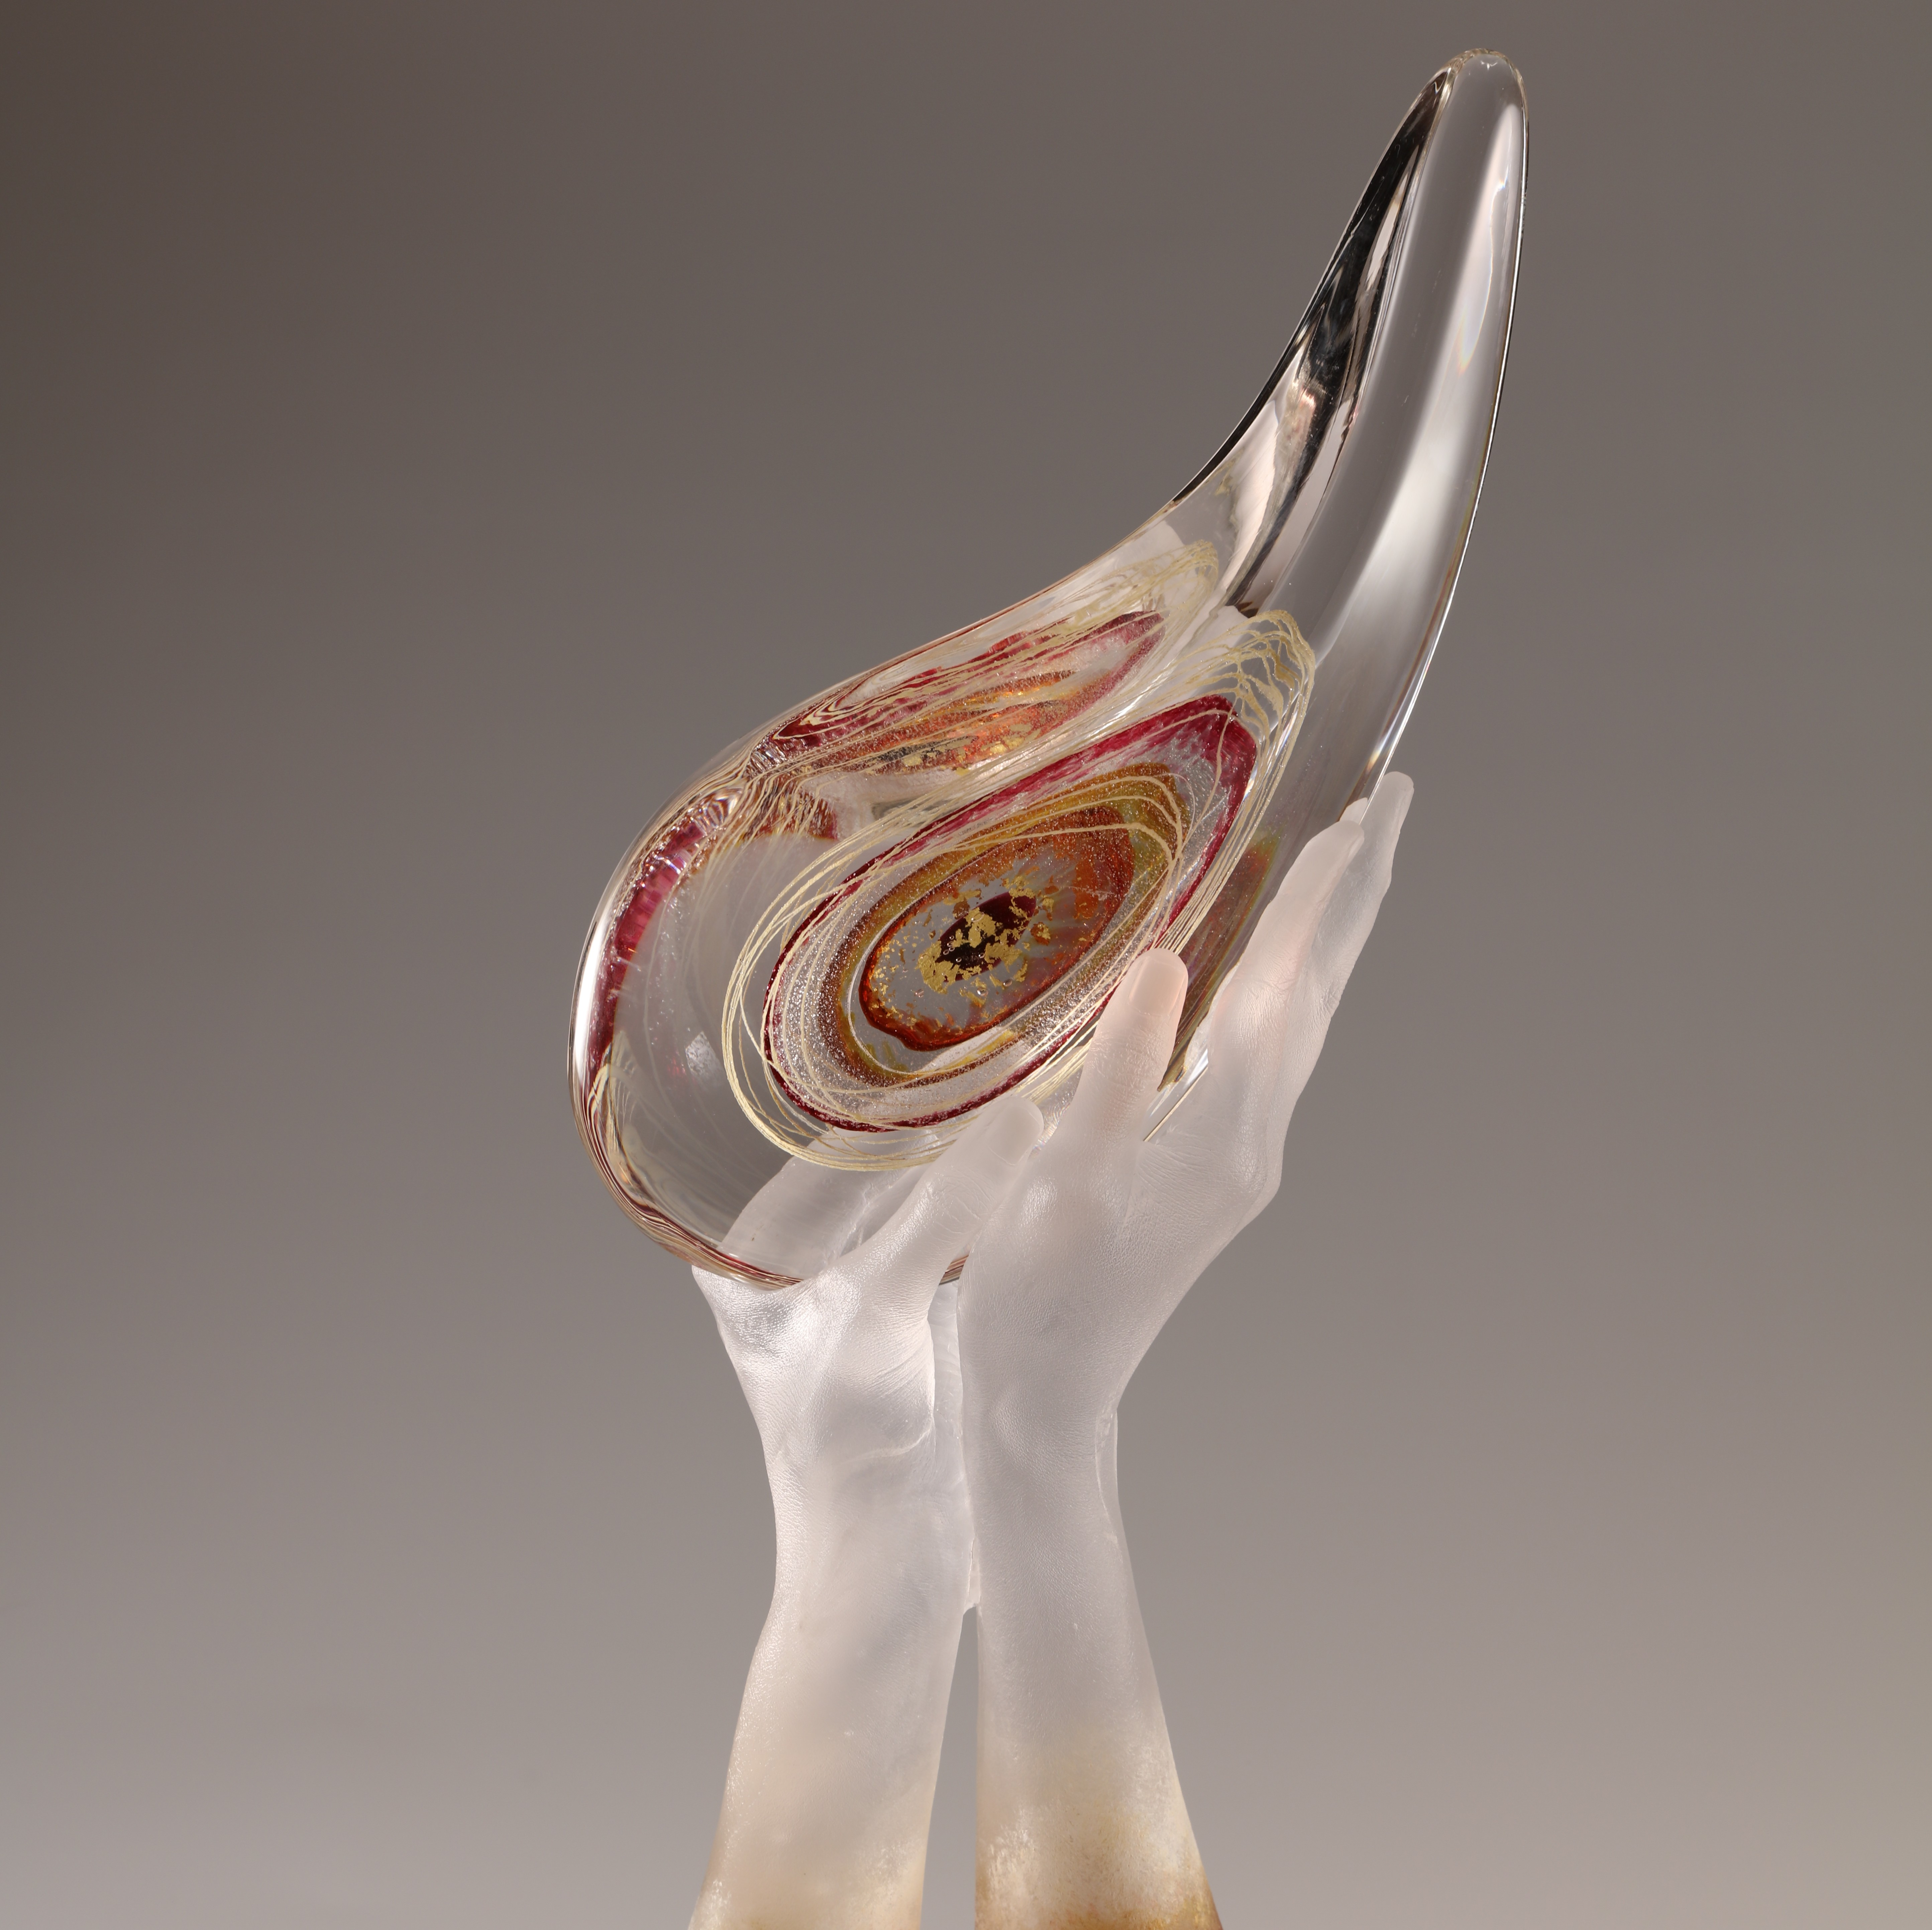 Sculpture of hands cast in glass holding curved teardrop form.